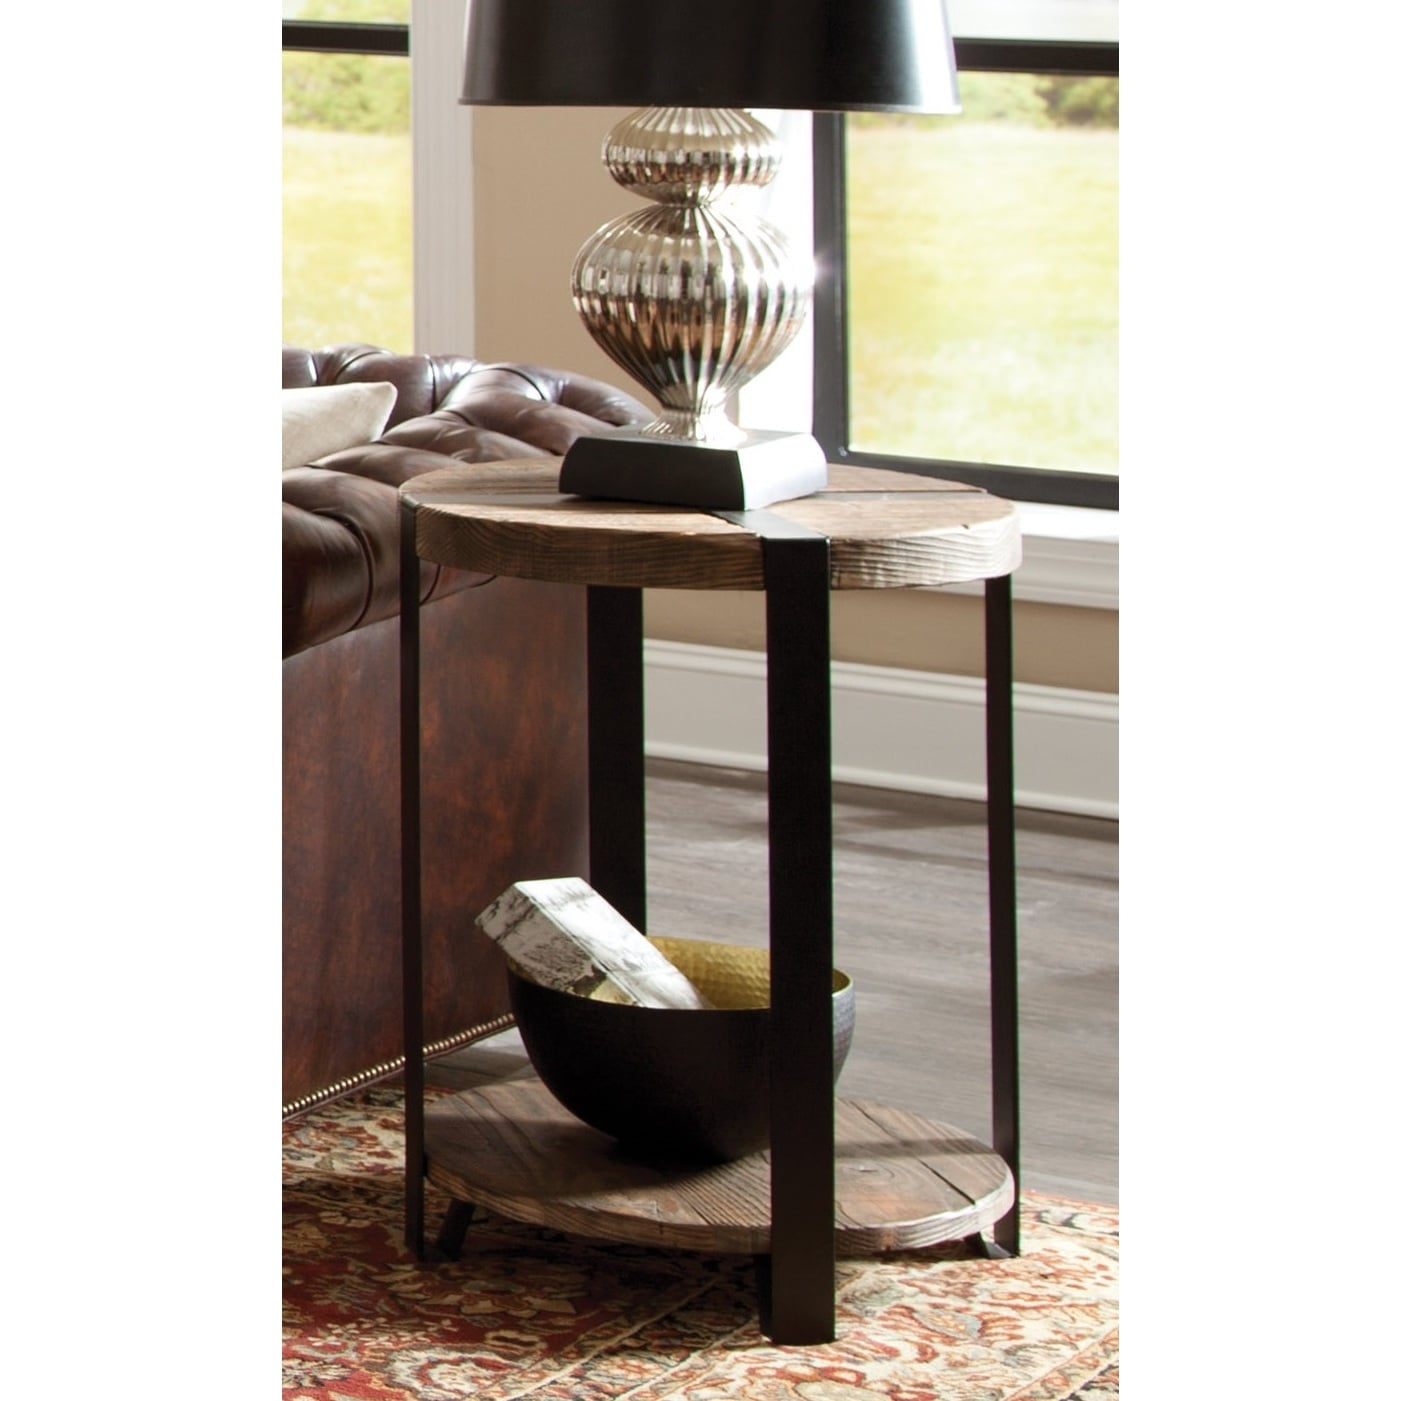 rustic round end table. Shop Carbon Loft Kenyon Natural Reclaimed Wood/Metal Rustic Round End Table - On Sale Free Shipping Today Overstock.com 20306499